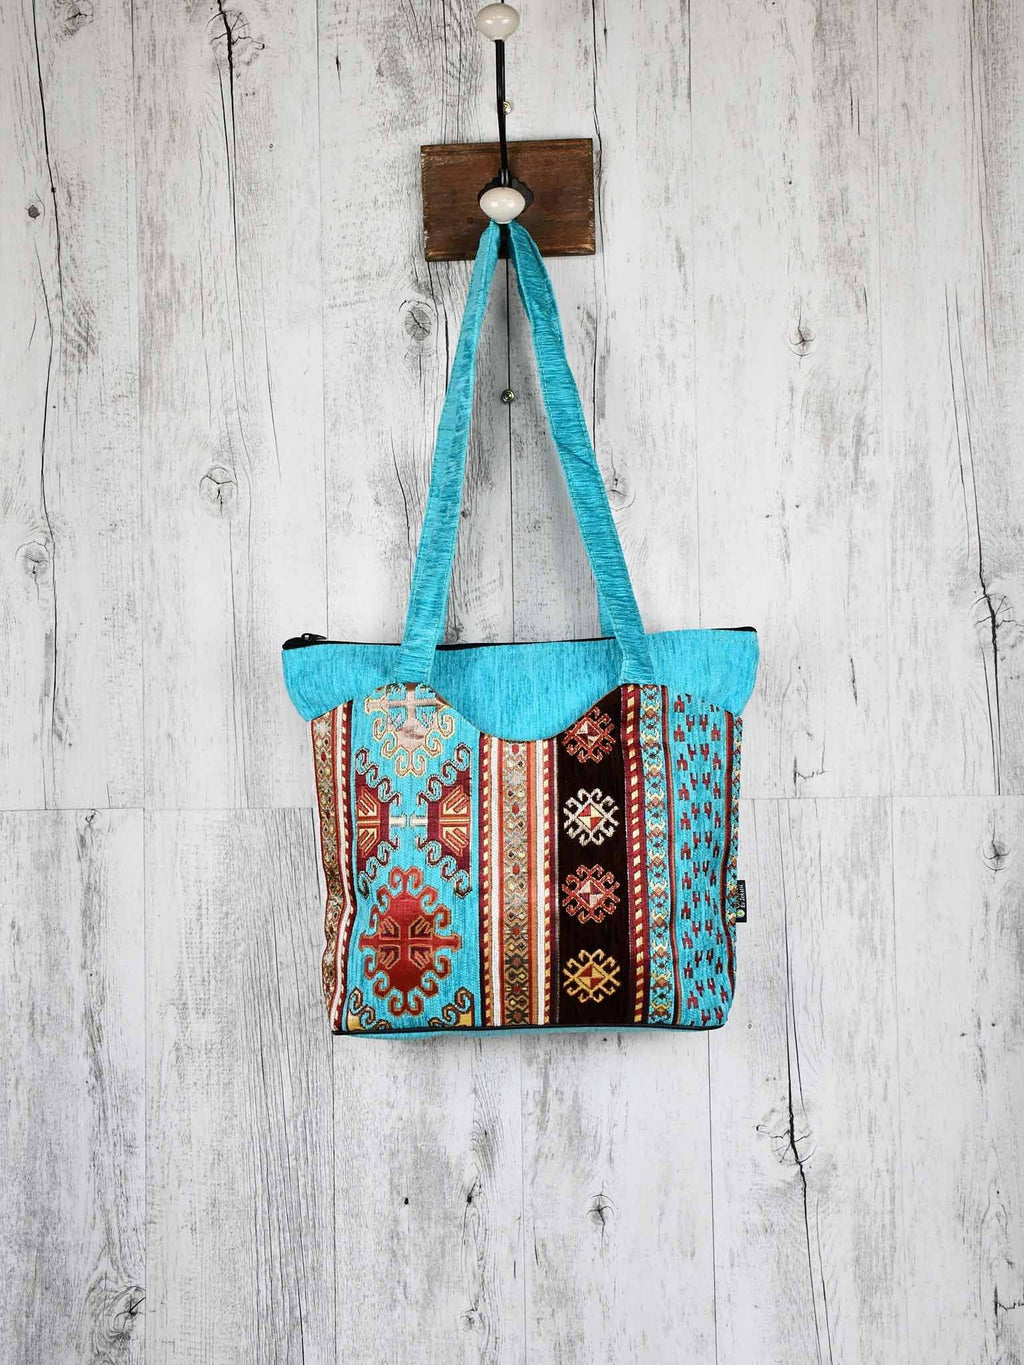 Turkish Handbag Tote Aztec Turquoise Brown Textile Sydney Grand Bazaar